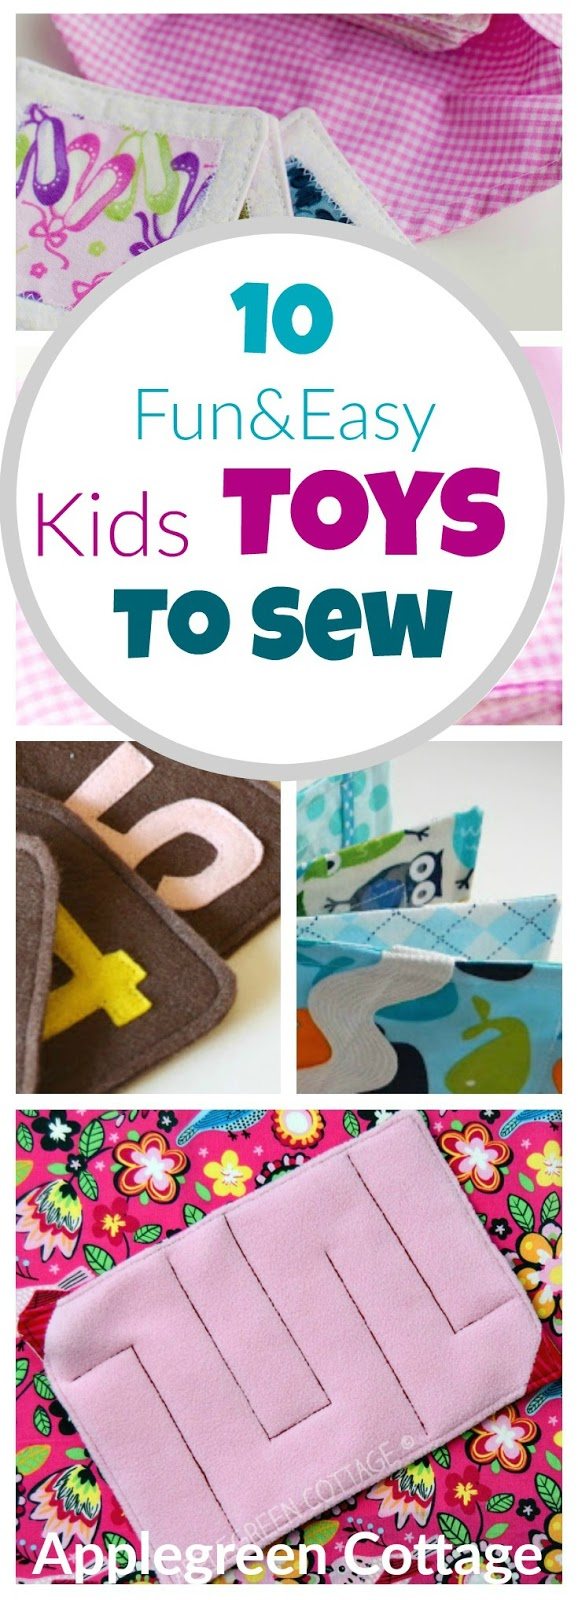 10 cool gifts for kids you can sew applegreen cottage make a perfect diy present for kids from these 10 free tutorials and patterns for fun jeuxipadfo Gallery